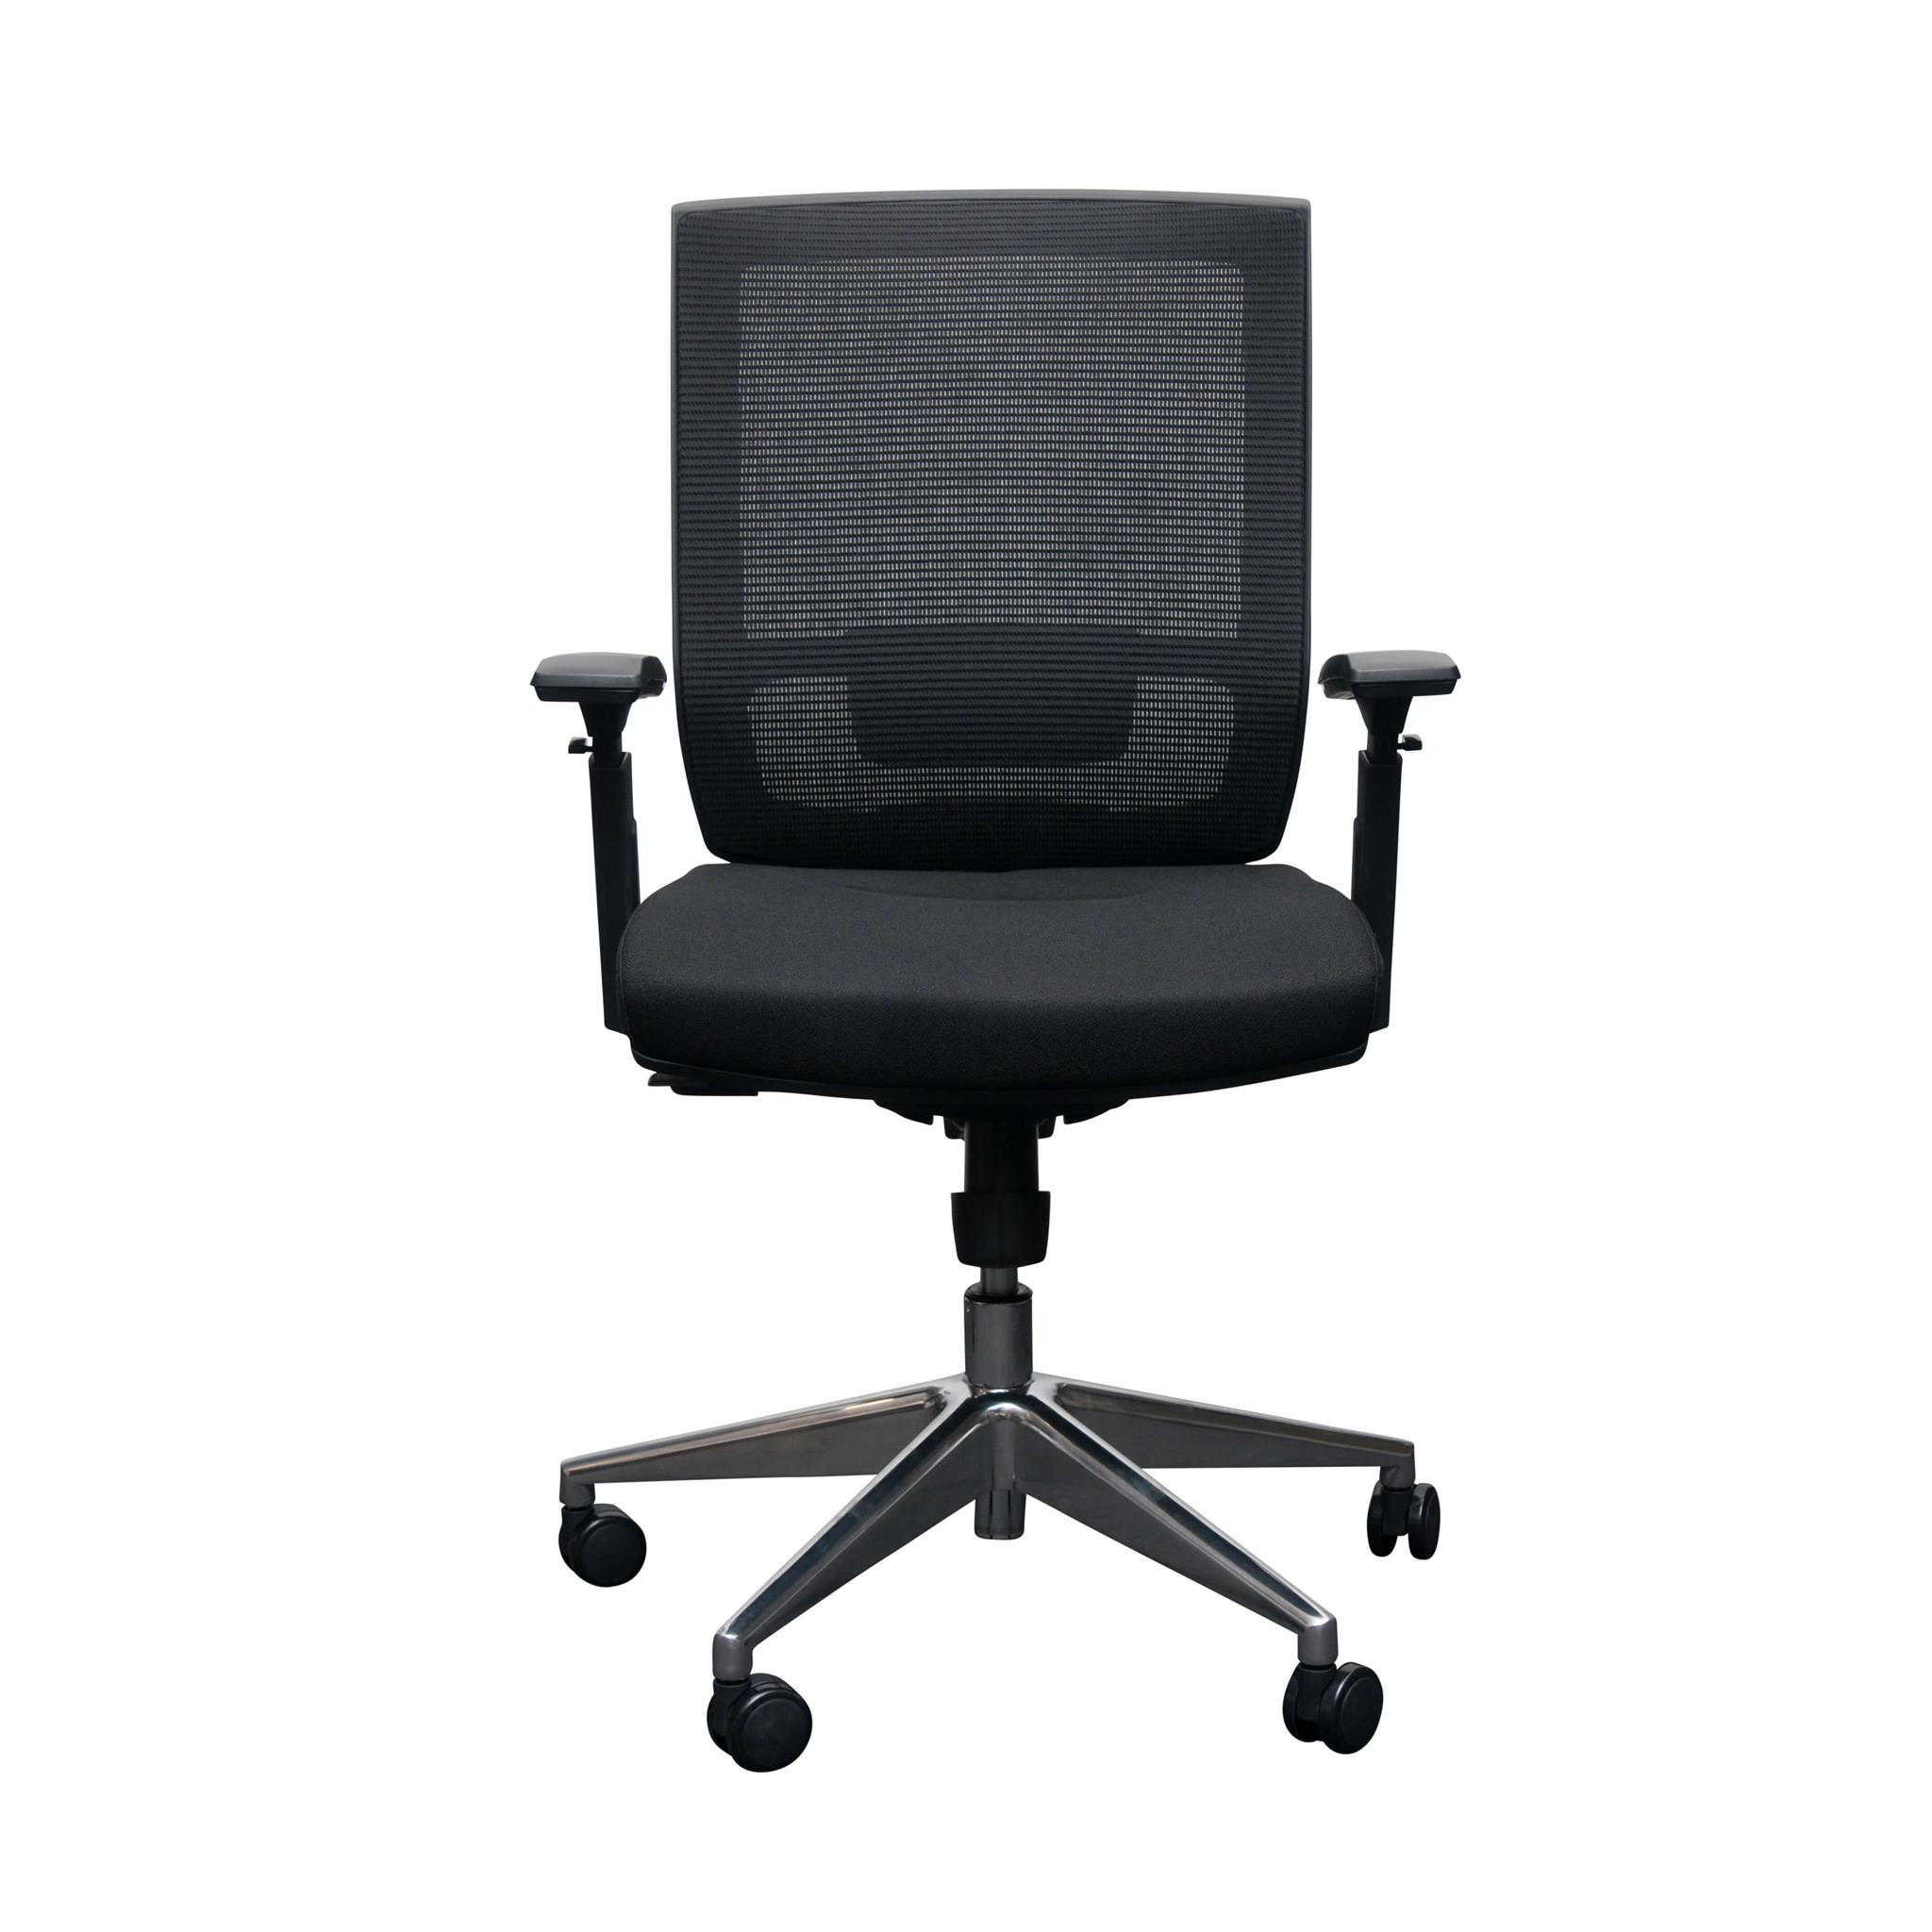 Boardroom Chairs Matrix Executive Office Chair